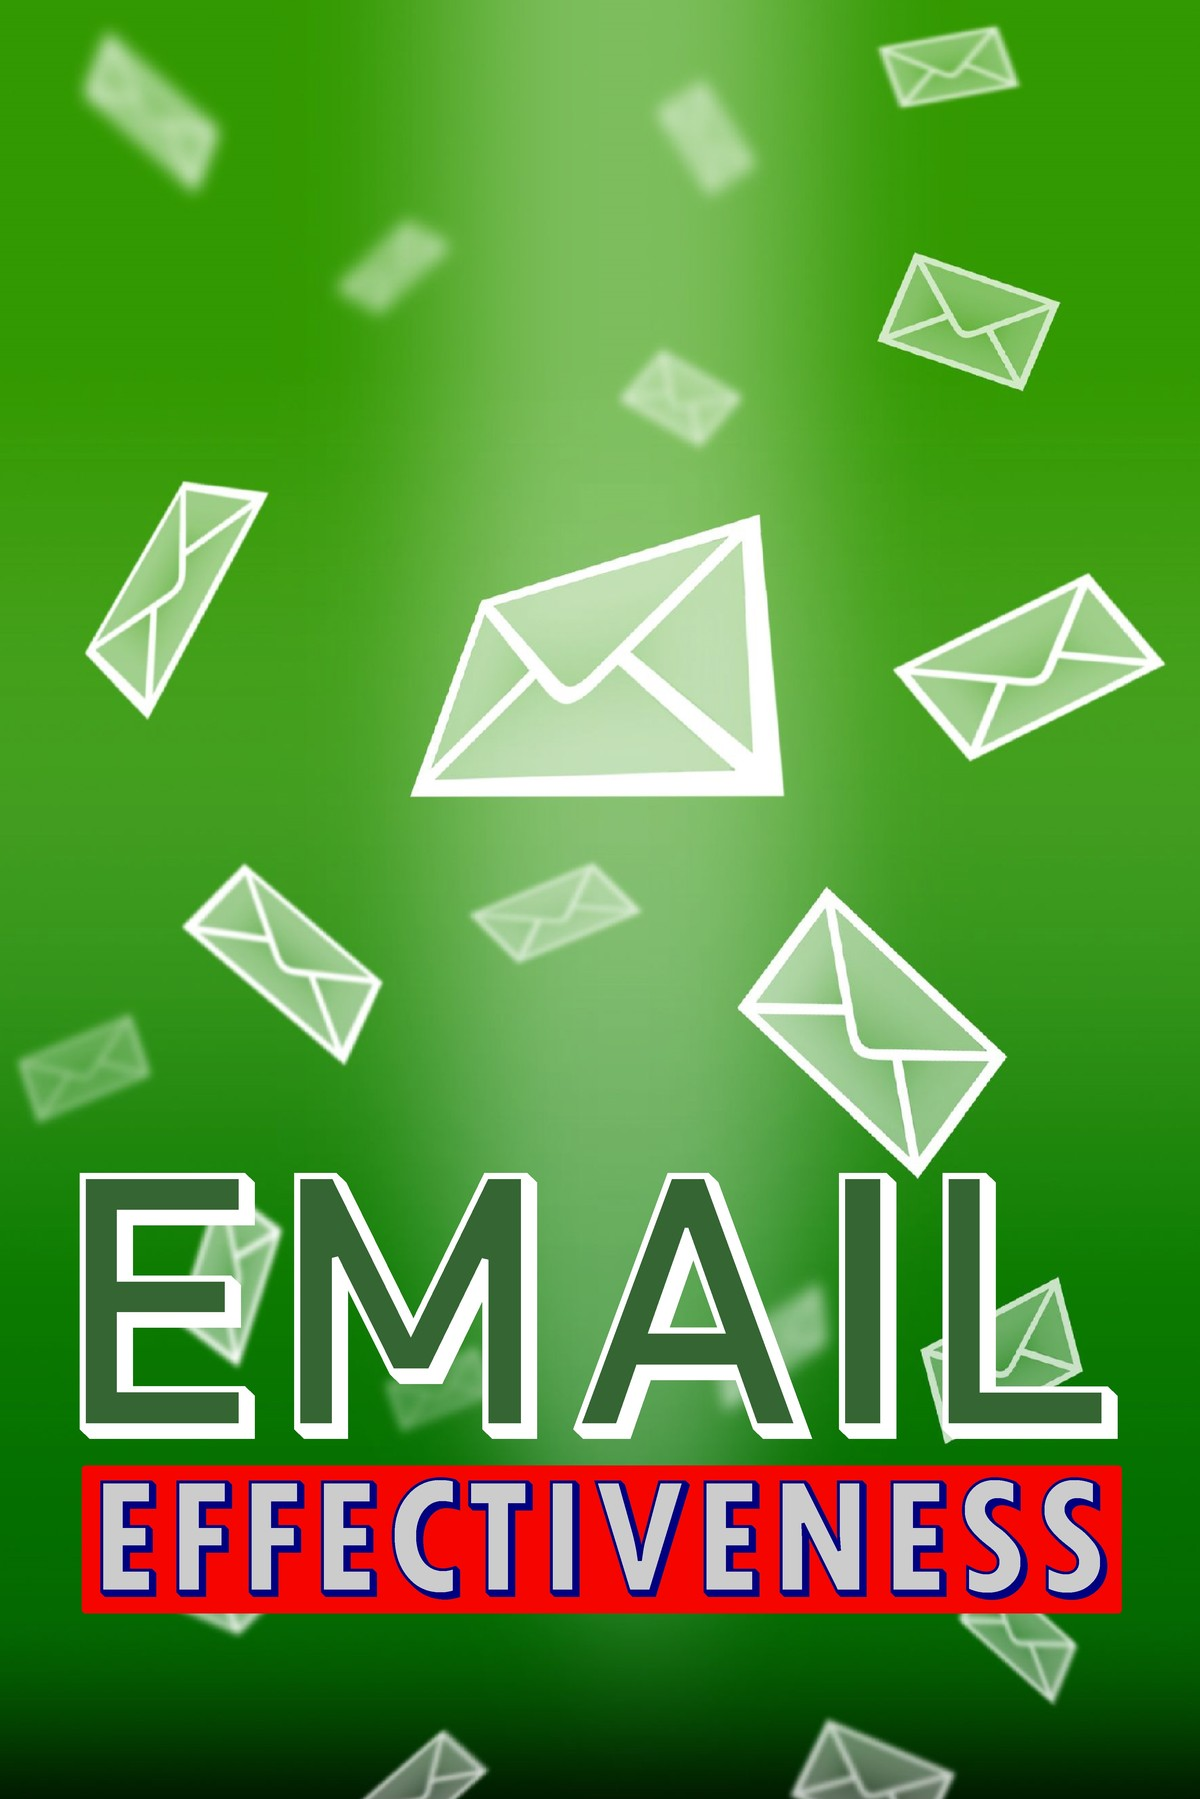 L7009 - Email Effectiveness